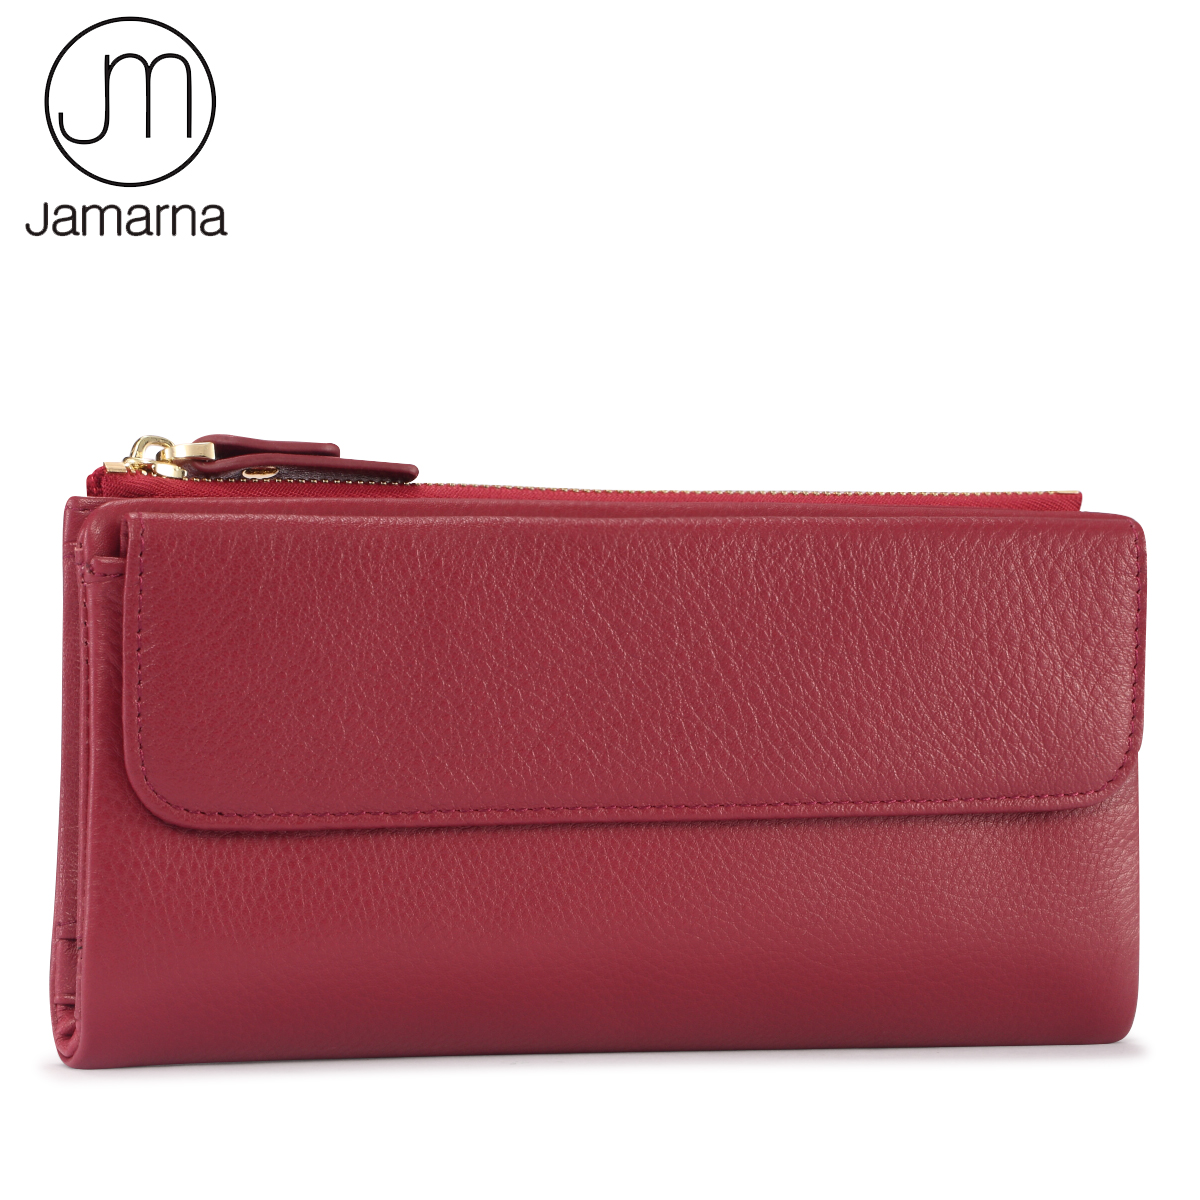 Jamarna Wallet Women Genuine Leather Long Clutch Women Purse With Zipper Pocket Phone Fashion Wallet Female Red Leather jamarna brand wallet female genuine leather long clutch women purse with phone holder women wallets fashion crocodile leather